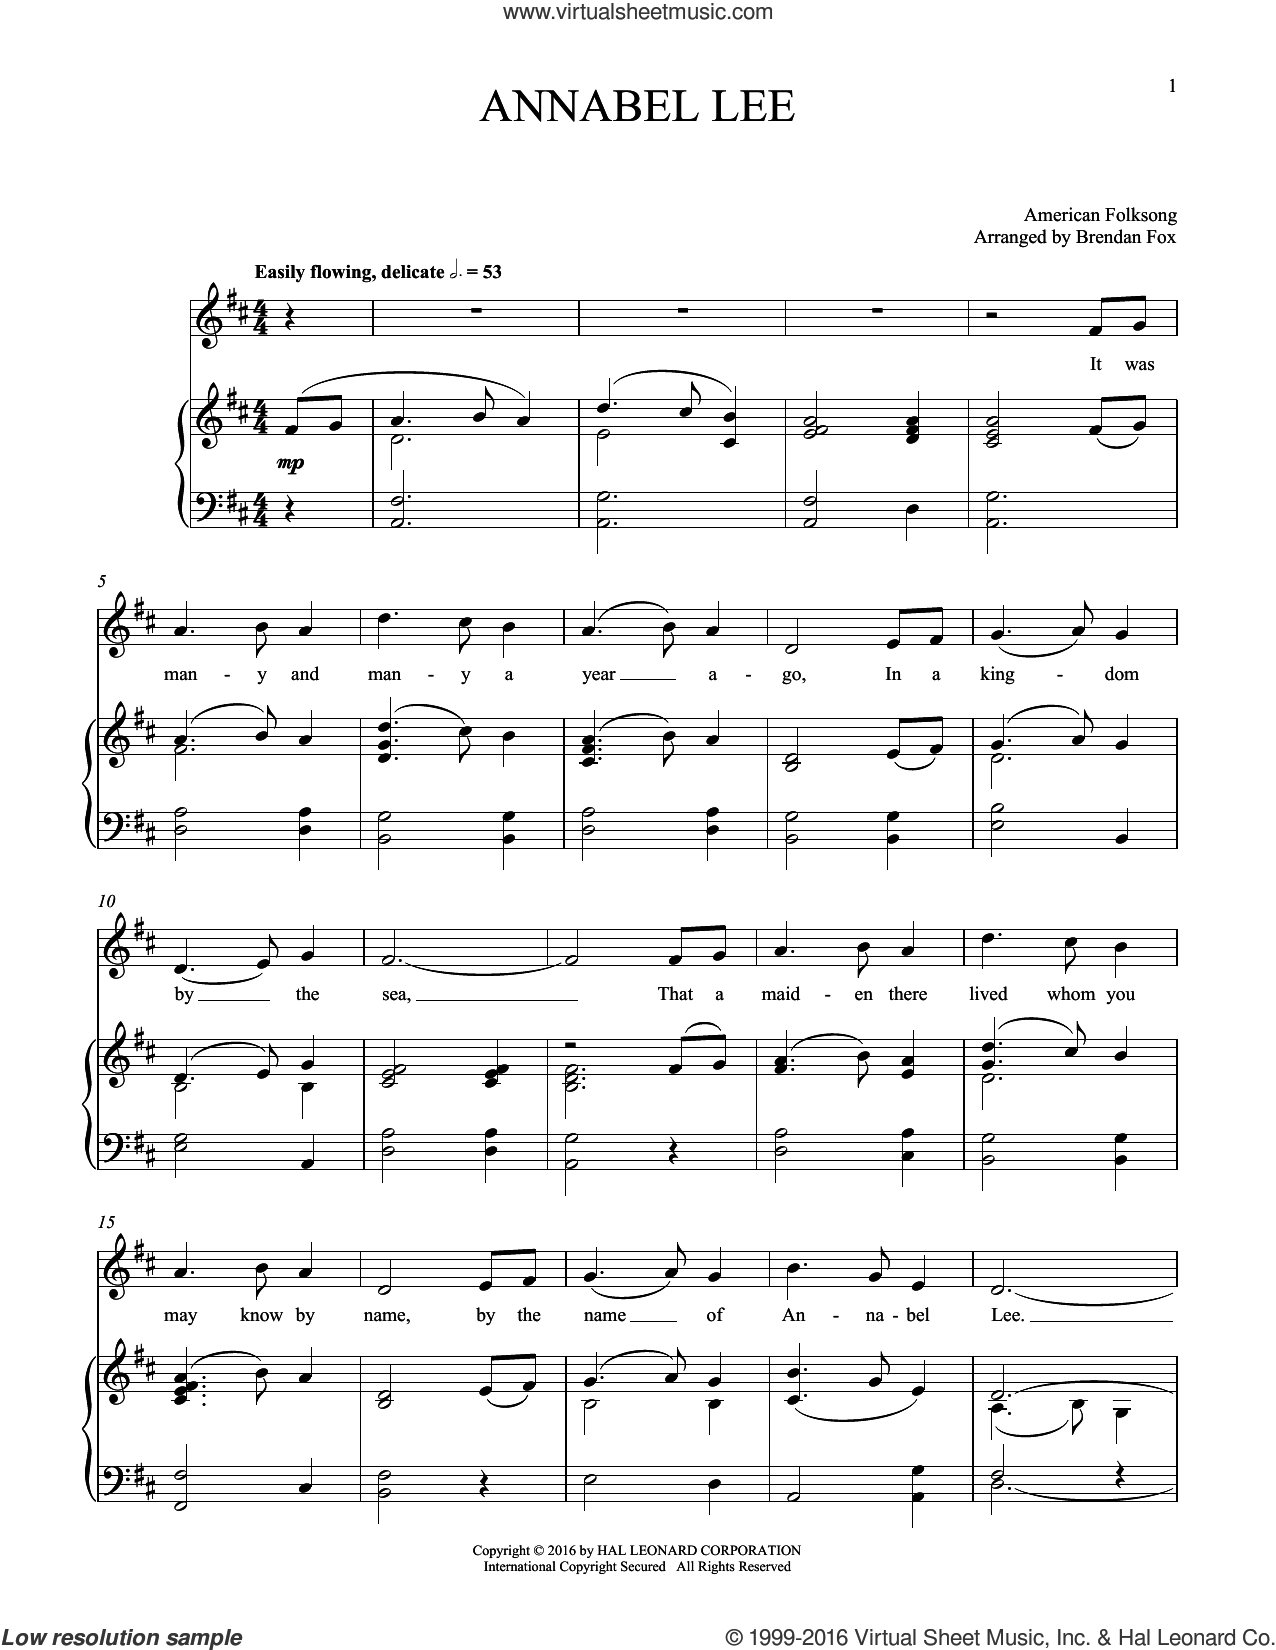 Annabel Lee sheet music for voice and piano, intermediate skill level